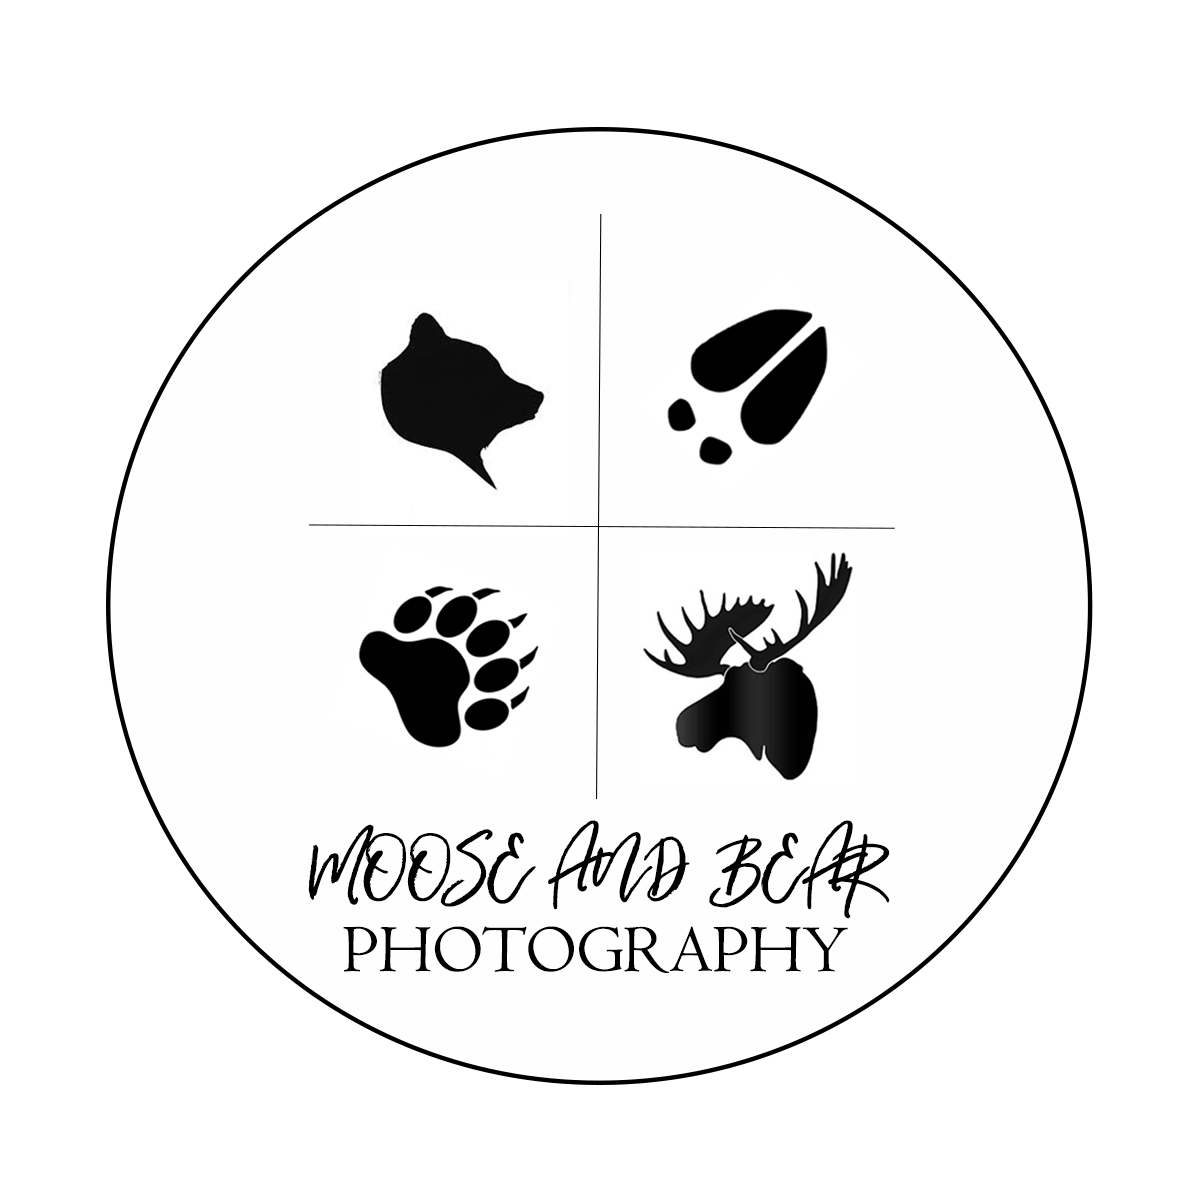 Moose and bear photography